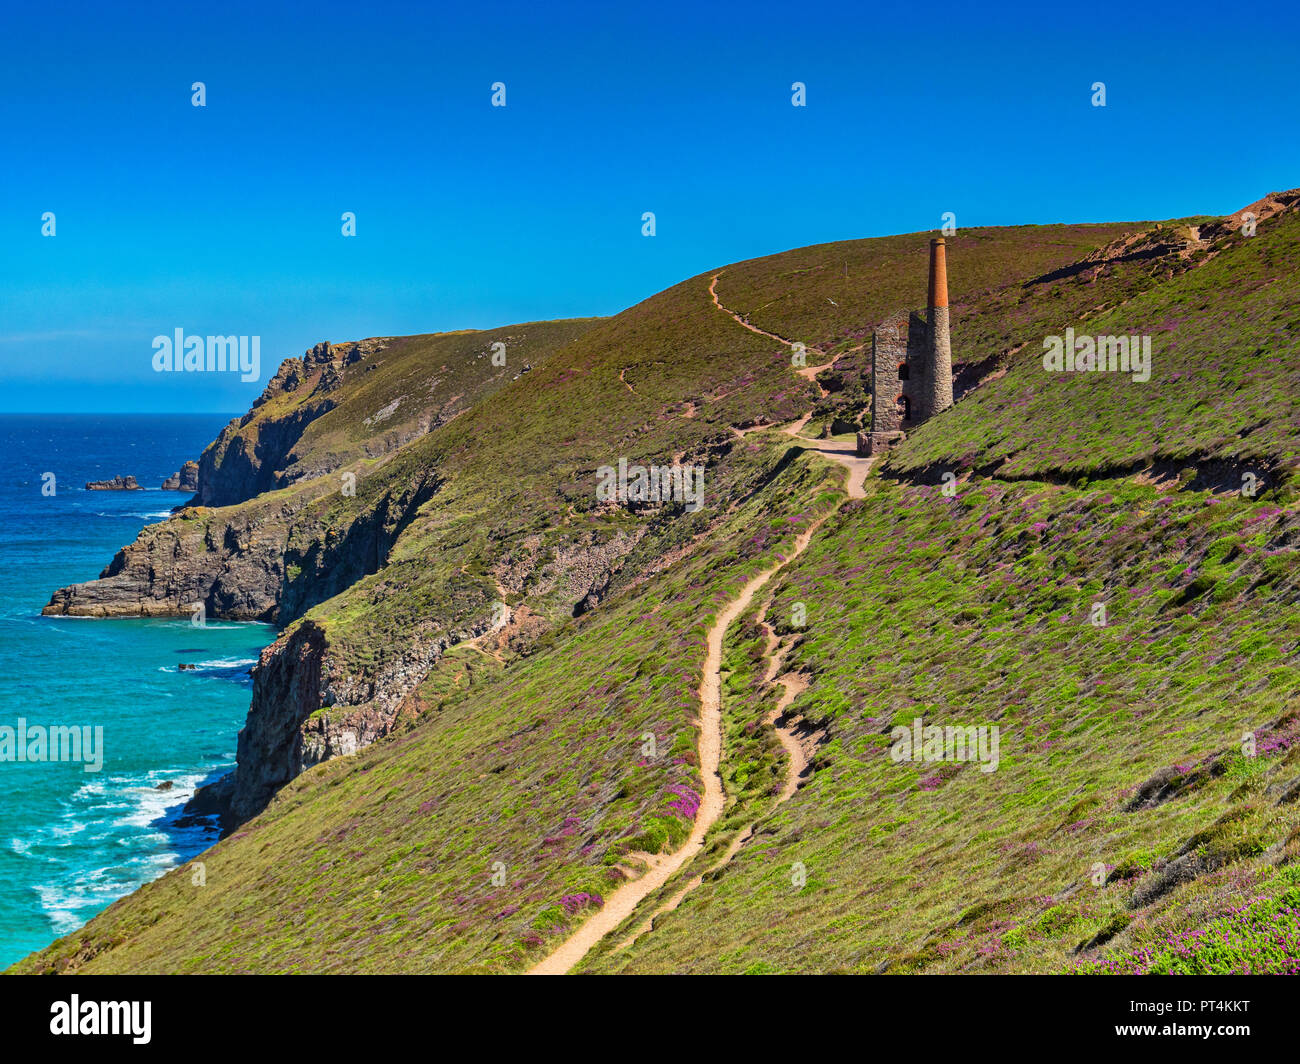 The South West Coast Path, winding its way over the Cornish cliffs and passing by the Towenroath Engine House, part of the Wheal Coates Mine, Cornwall Stock Photo